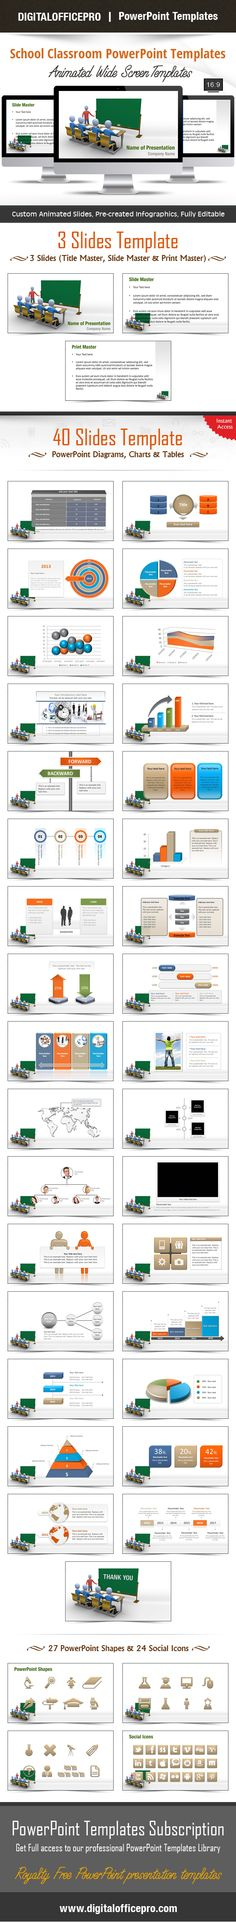 Download our 6 slide green house effect ppt template to create impress and engage your audience with school classroom powerpoint template and school classroom powerpoint backgrounds from toneelgroepblik Choice Image